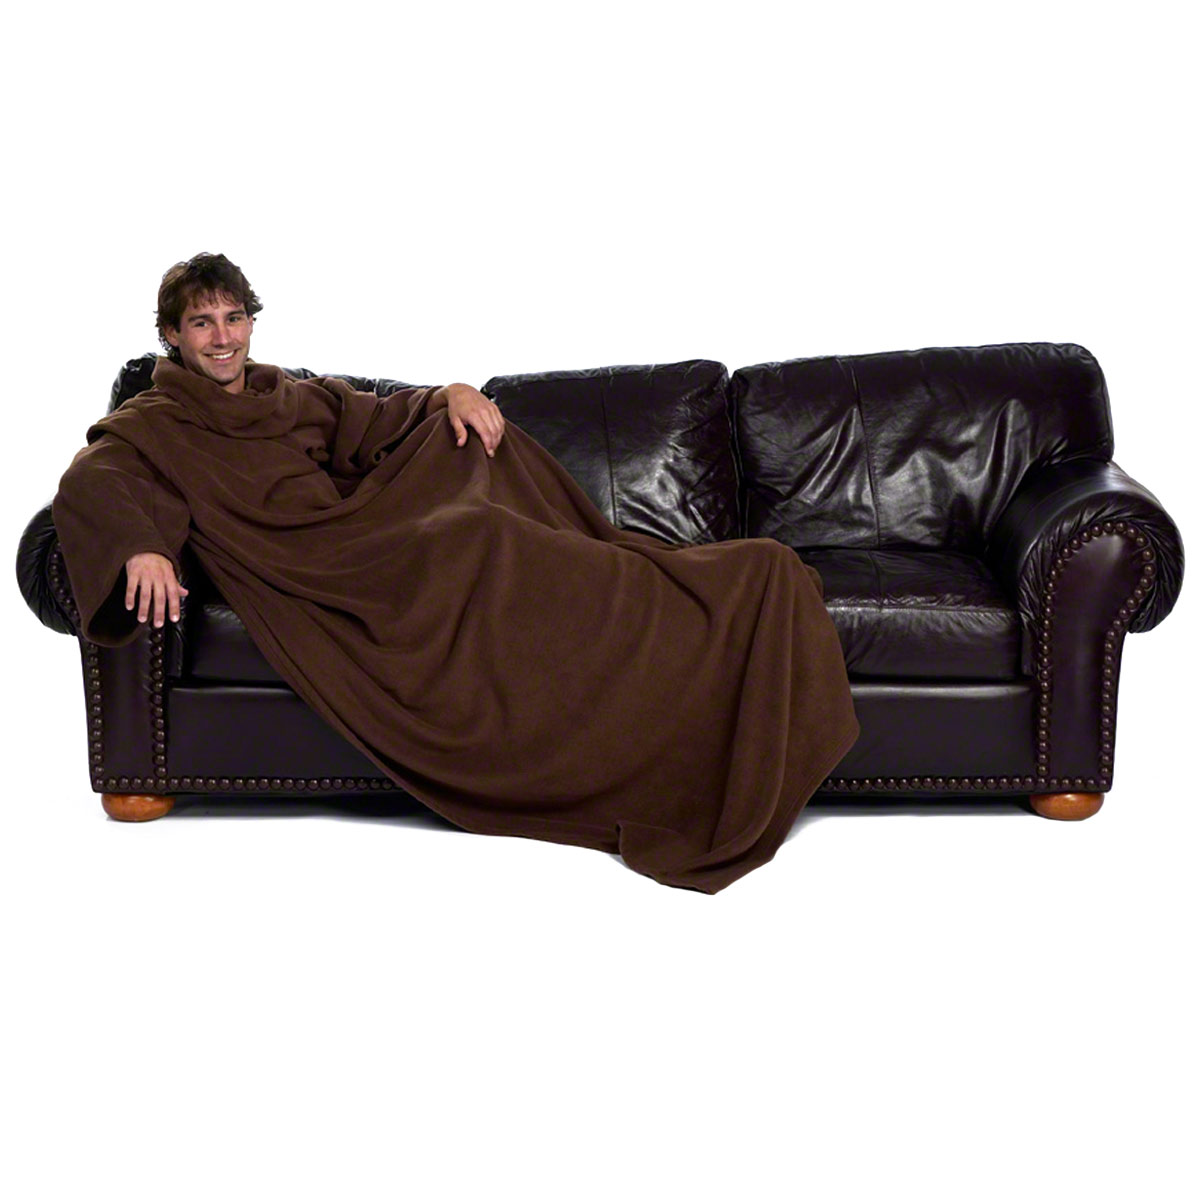 xxl snuggie blanket fleecedecke rmeldecke lounge decke kuscheldecke mit rmeln ebay. Black Bedroom Furniture Sets. Home Design Ideas